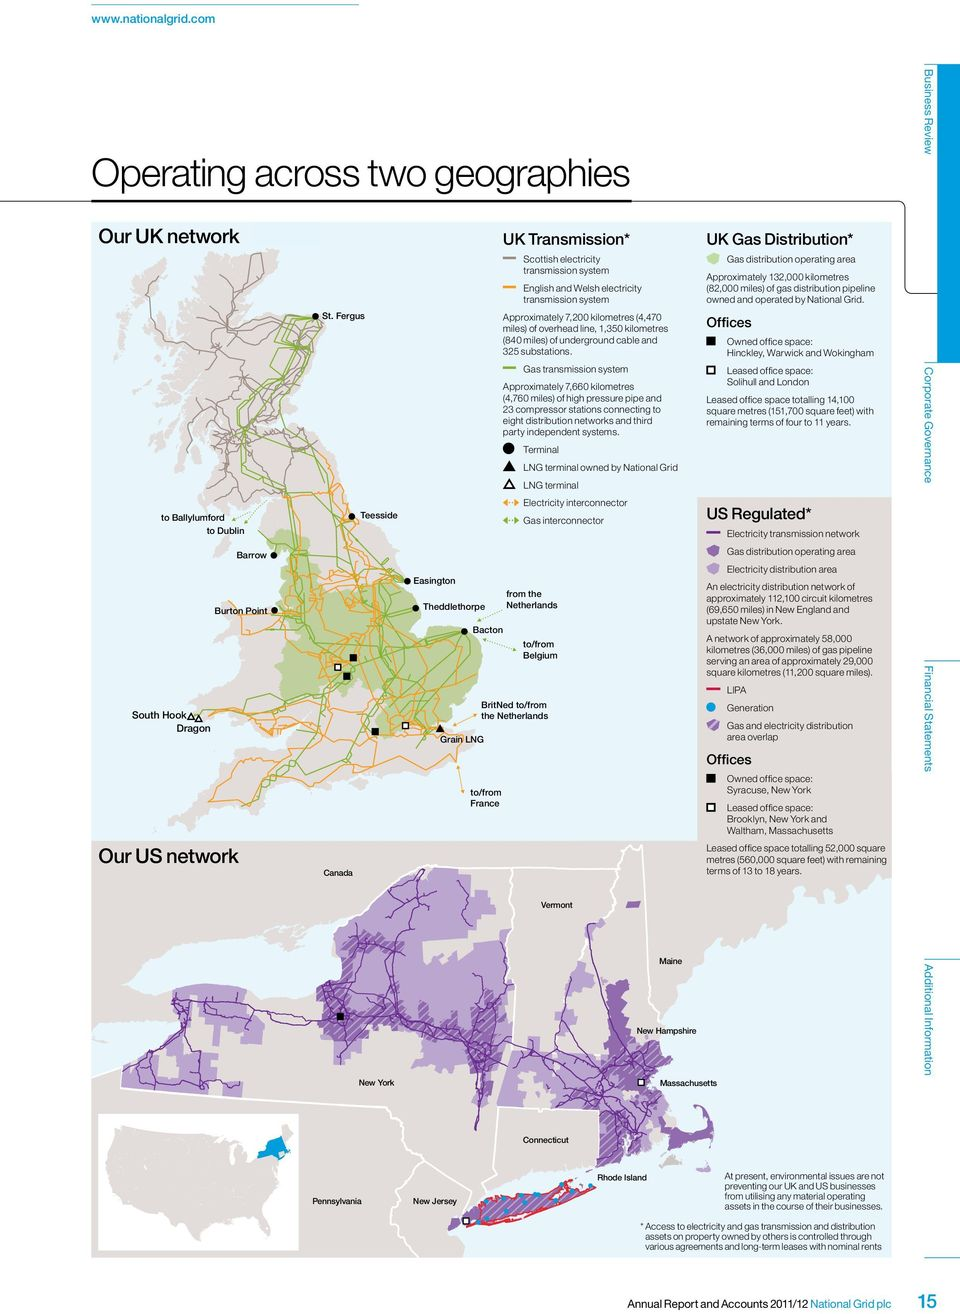 132,000 kilometres (82,000 miles) of gas distribution pipeline owned and operated by National Grid. English and Welsh electricity transmission system St.